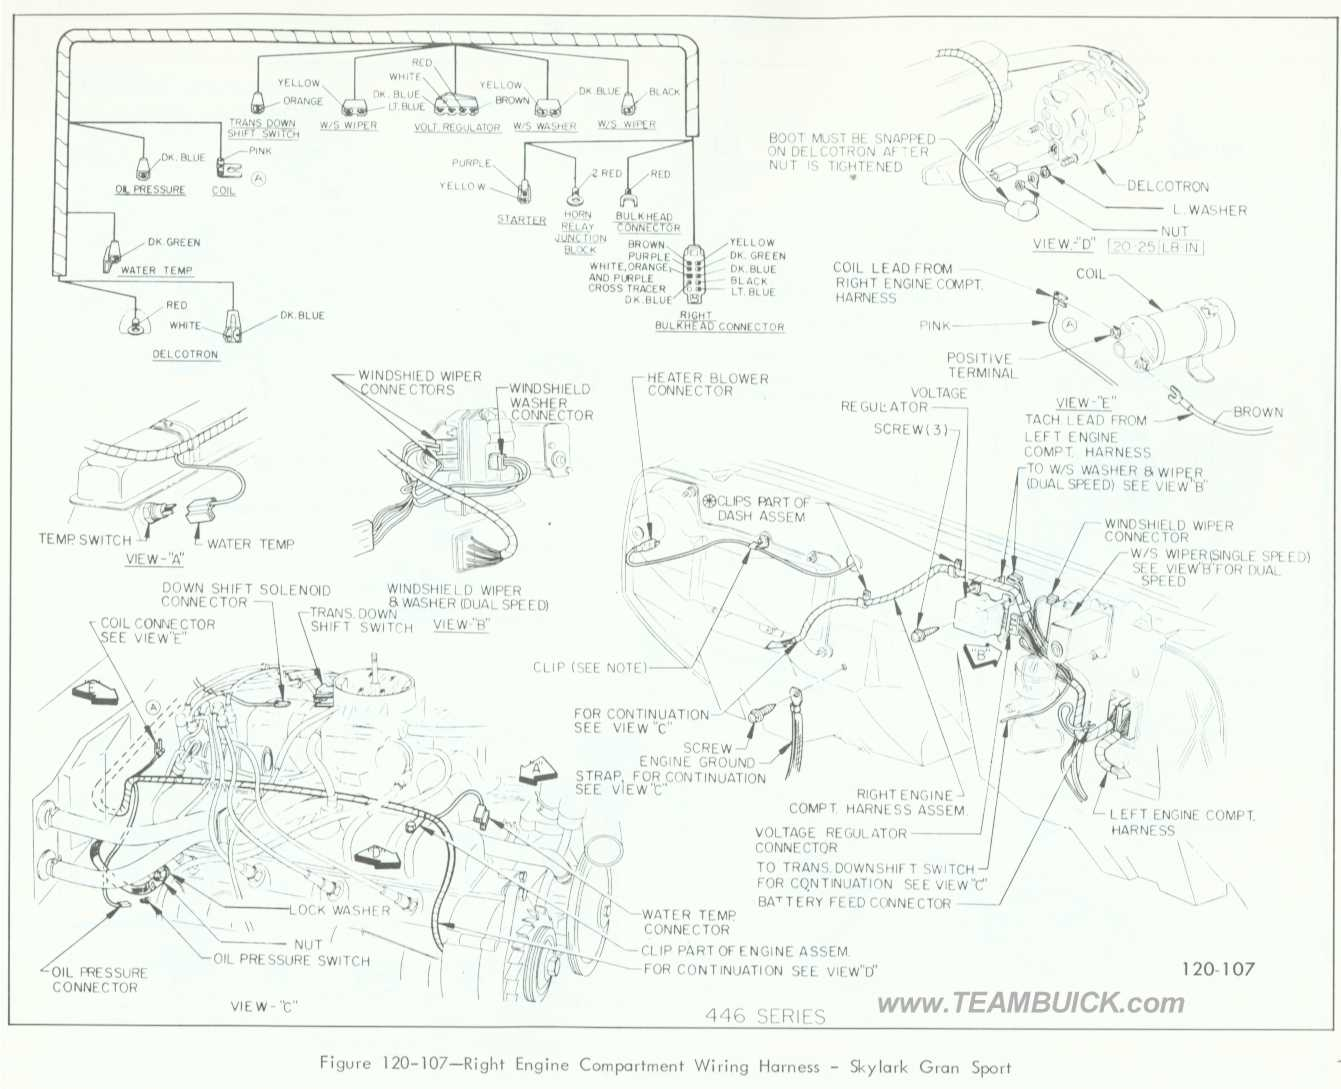 66 Buick Skylark Wiring Diagram on 1958 cadillac eldorado wiring diagram